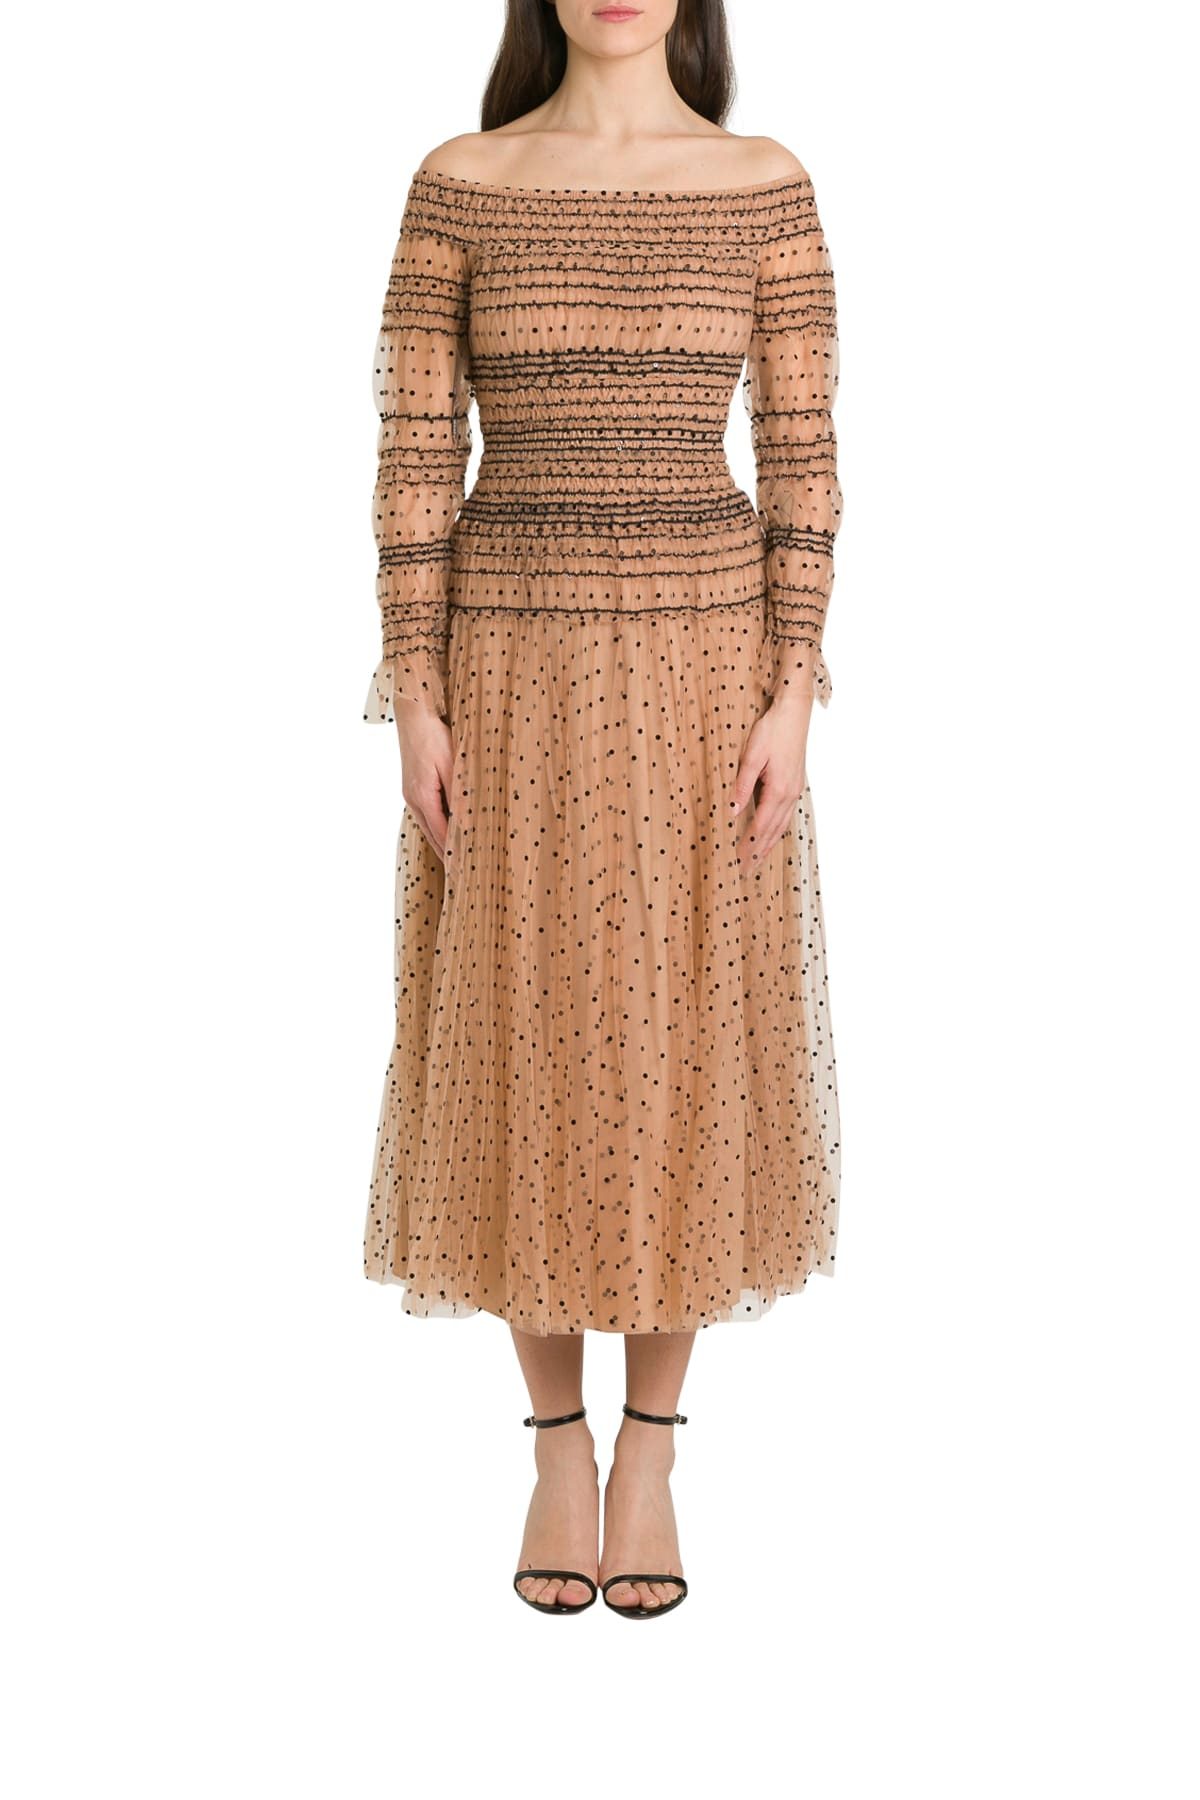 Buy self-portrait Polka Dots Midi Dress In Pleated Tulle online, shop self-portrait with free shipping